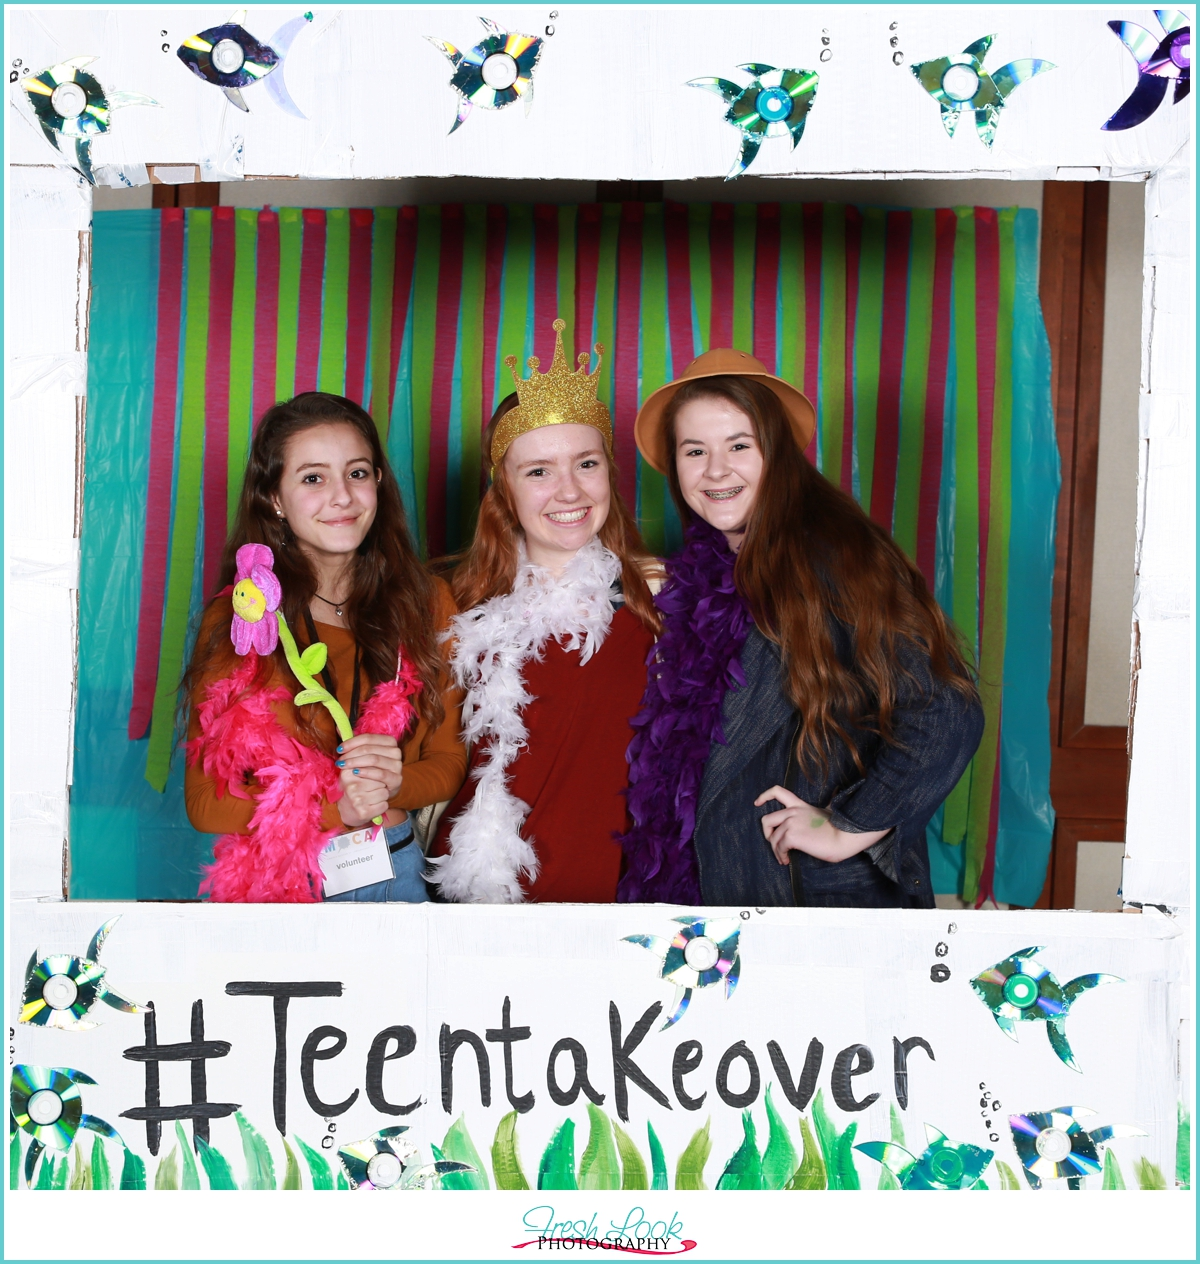 teen takeover at MOCA